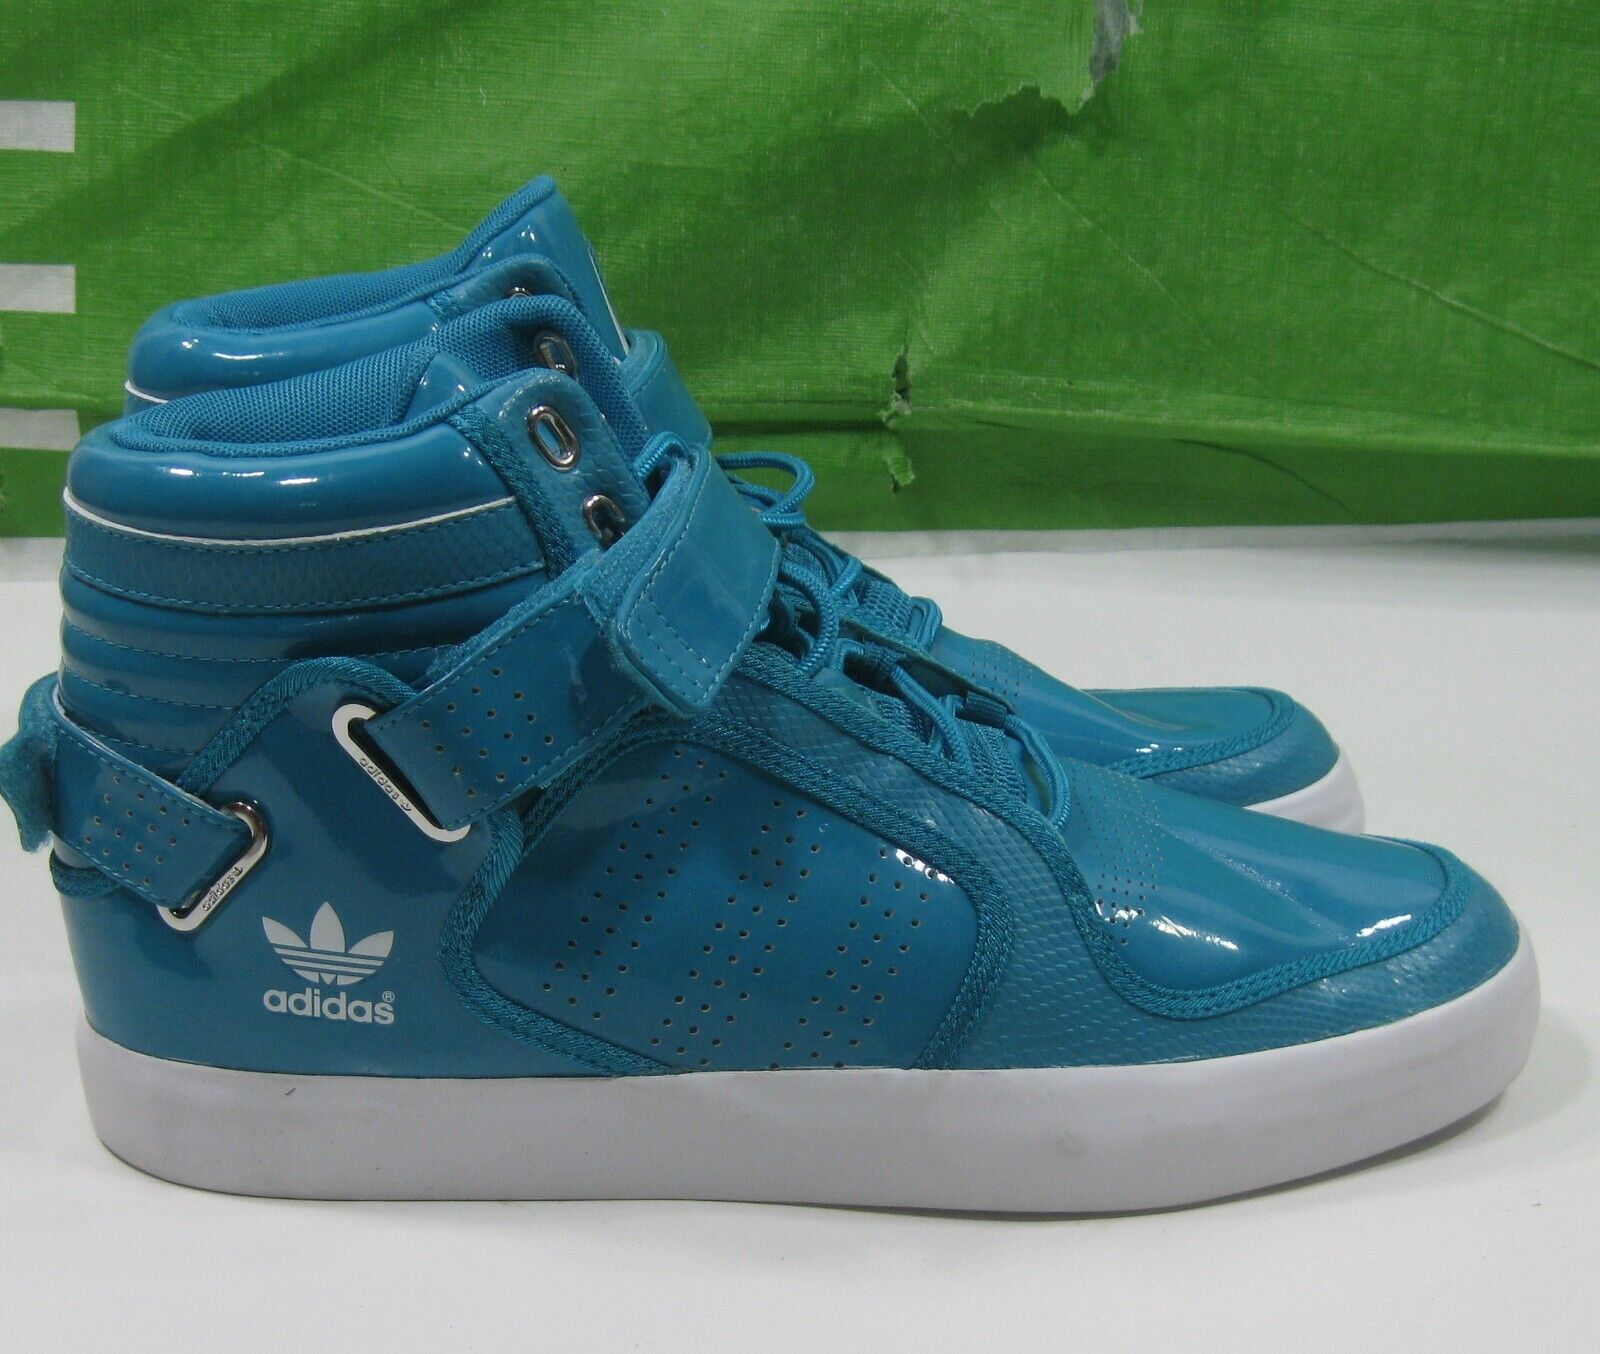 Adidas G21527 Mid Rise shoes Turquoise White Leather Men shoes Size  9